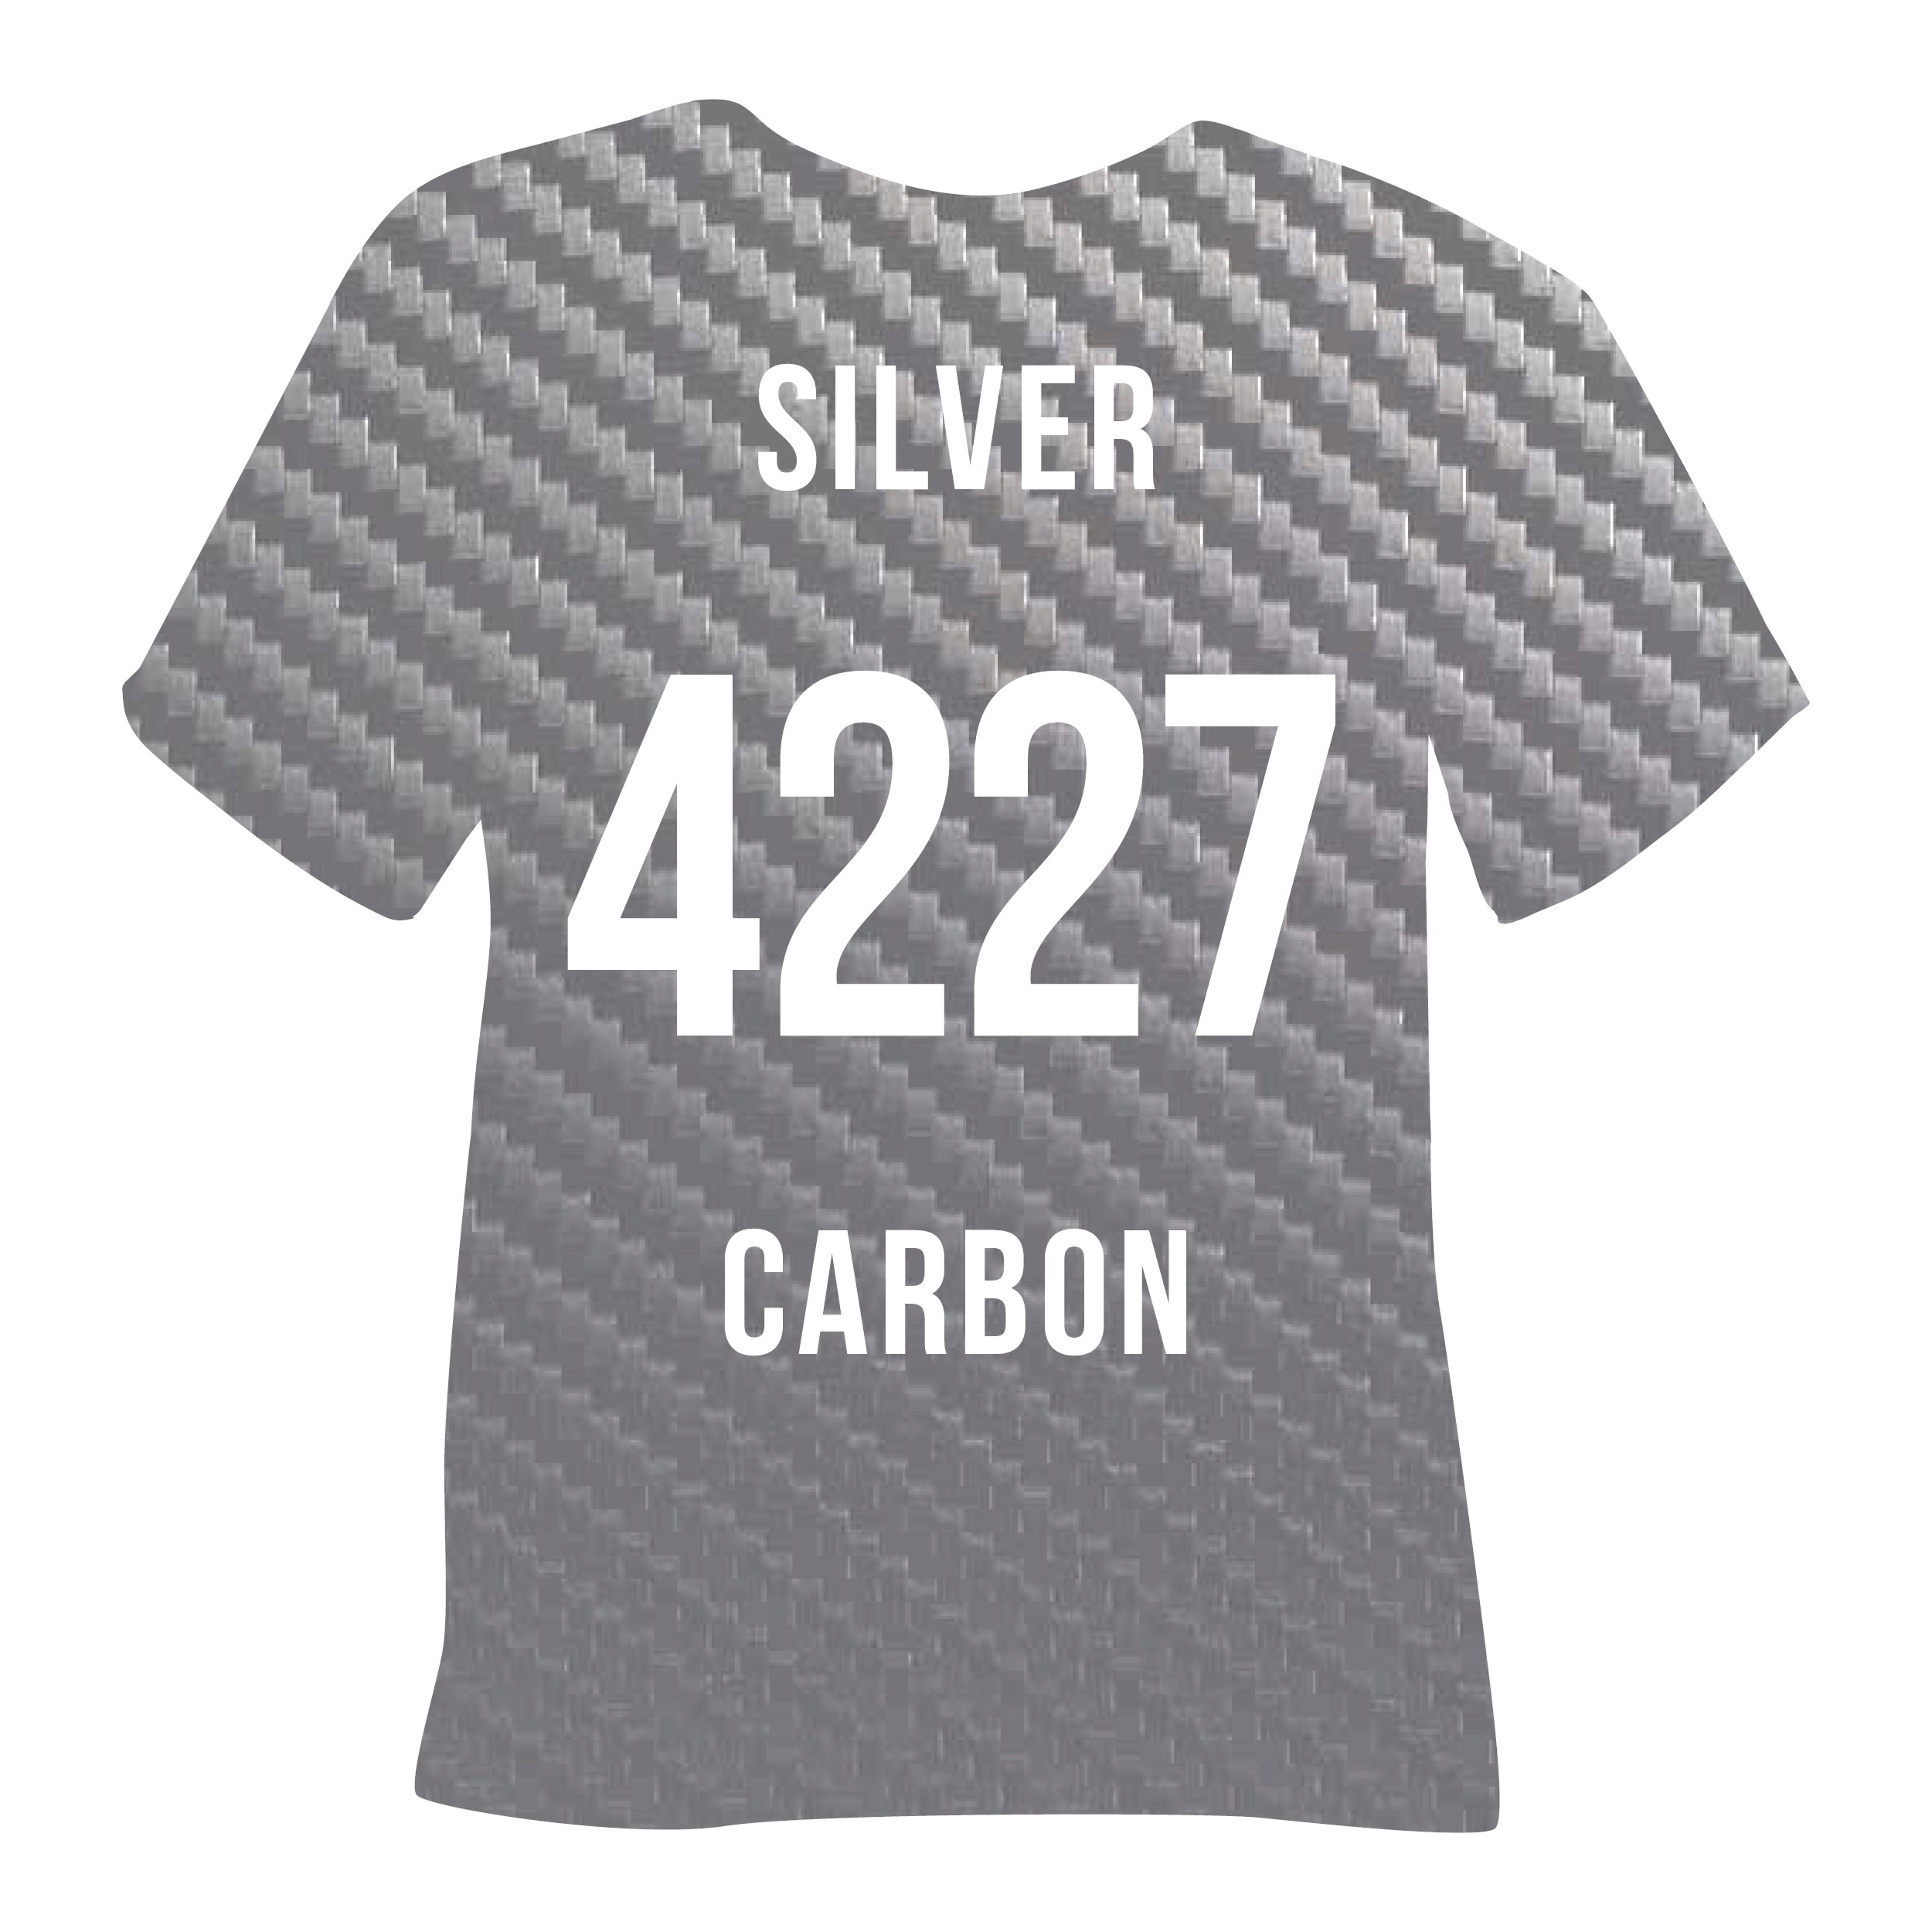 4227 SILVER CARBON